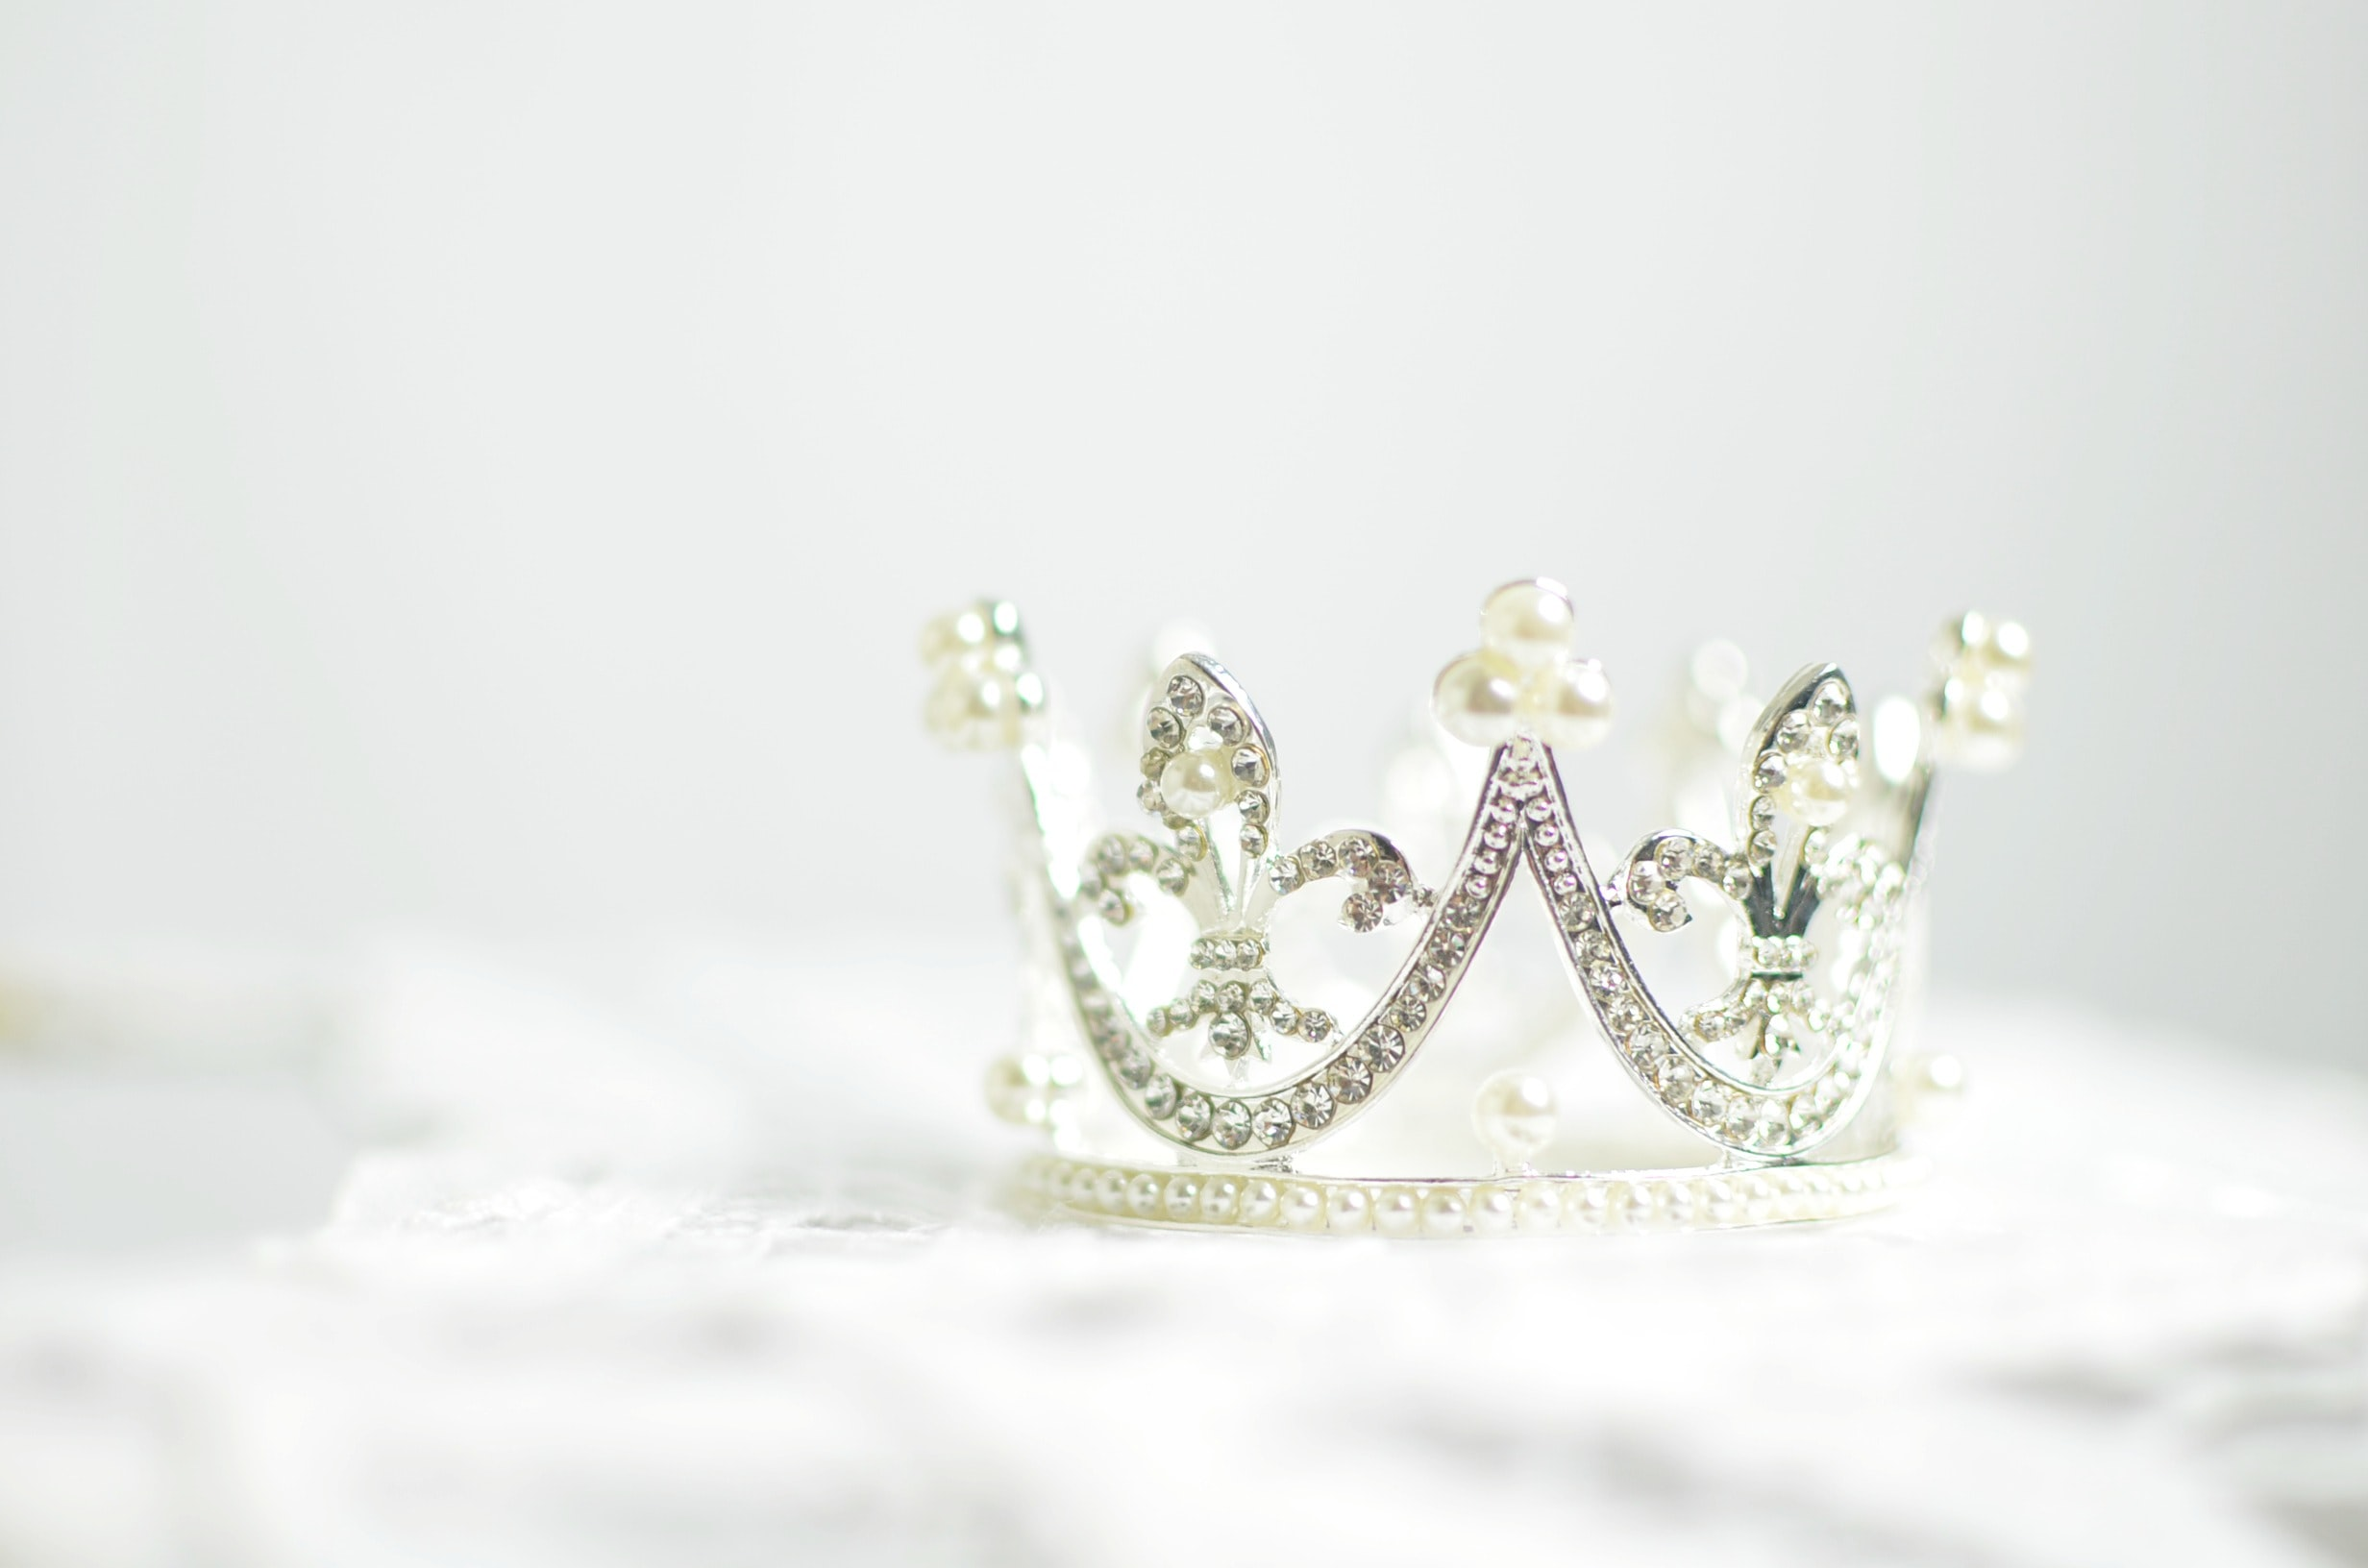 shallow photography of silver-colored crown